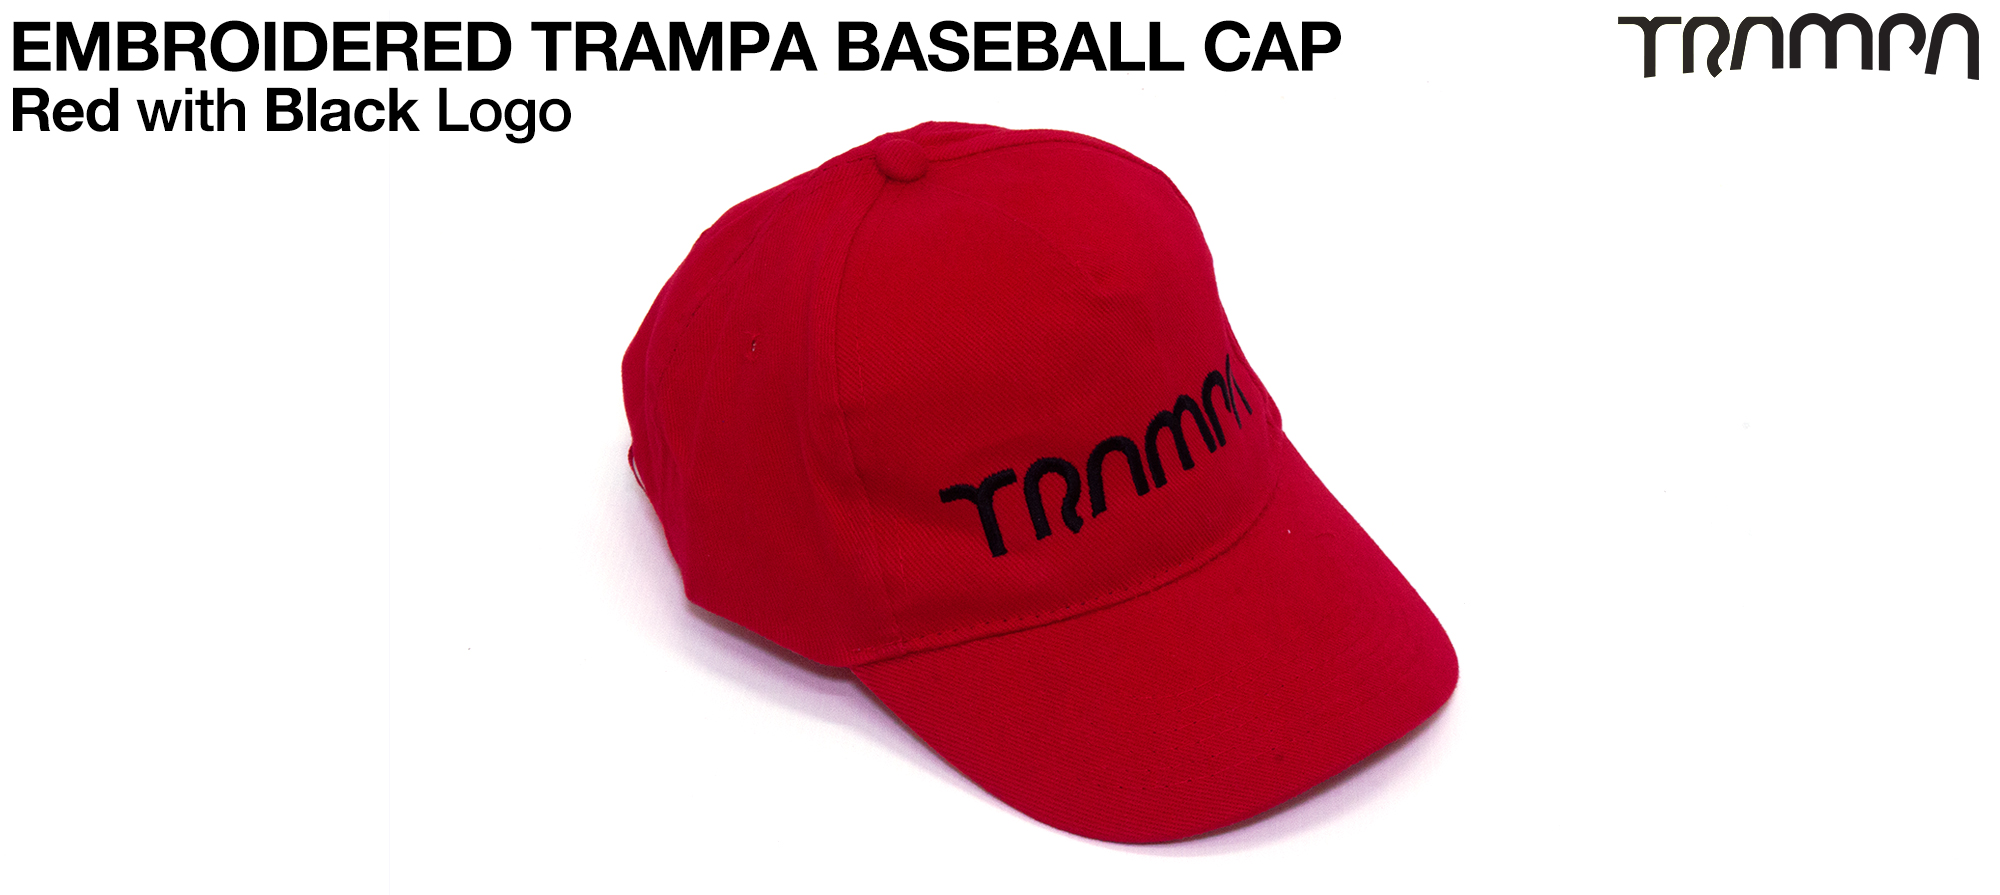 RED Baseball Cap with BLACK logo embroidered